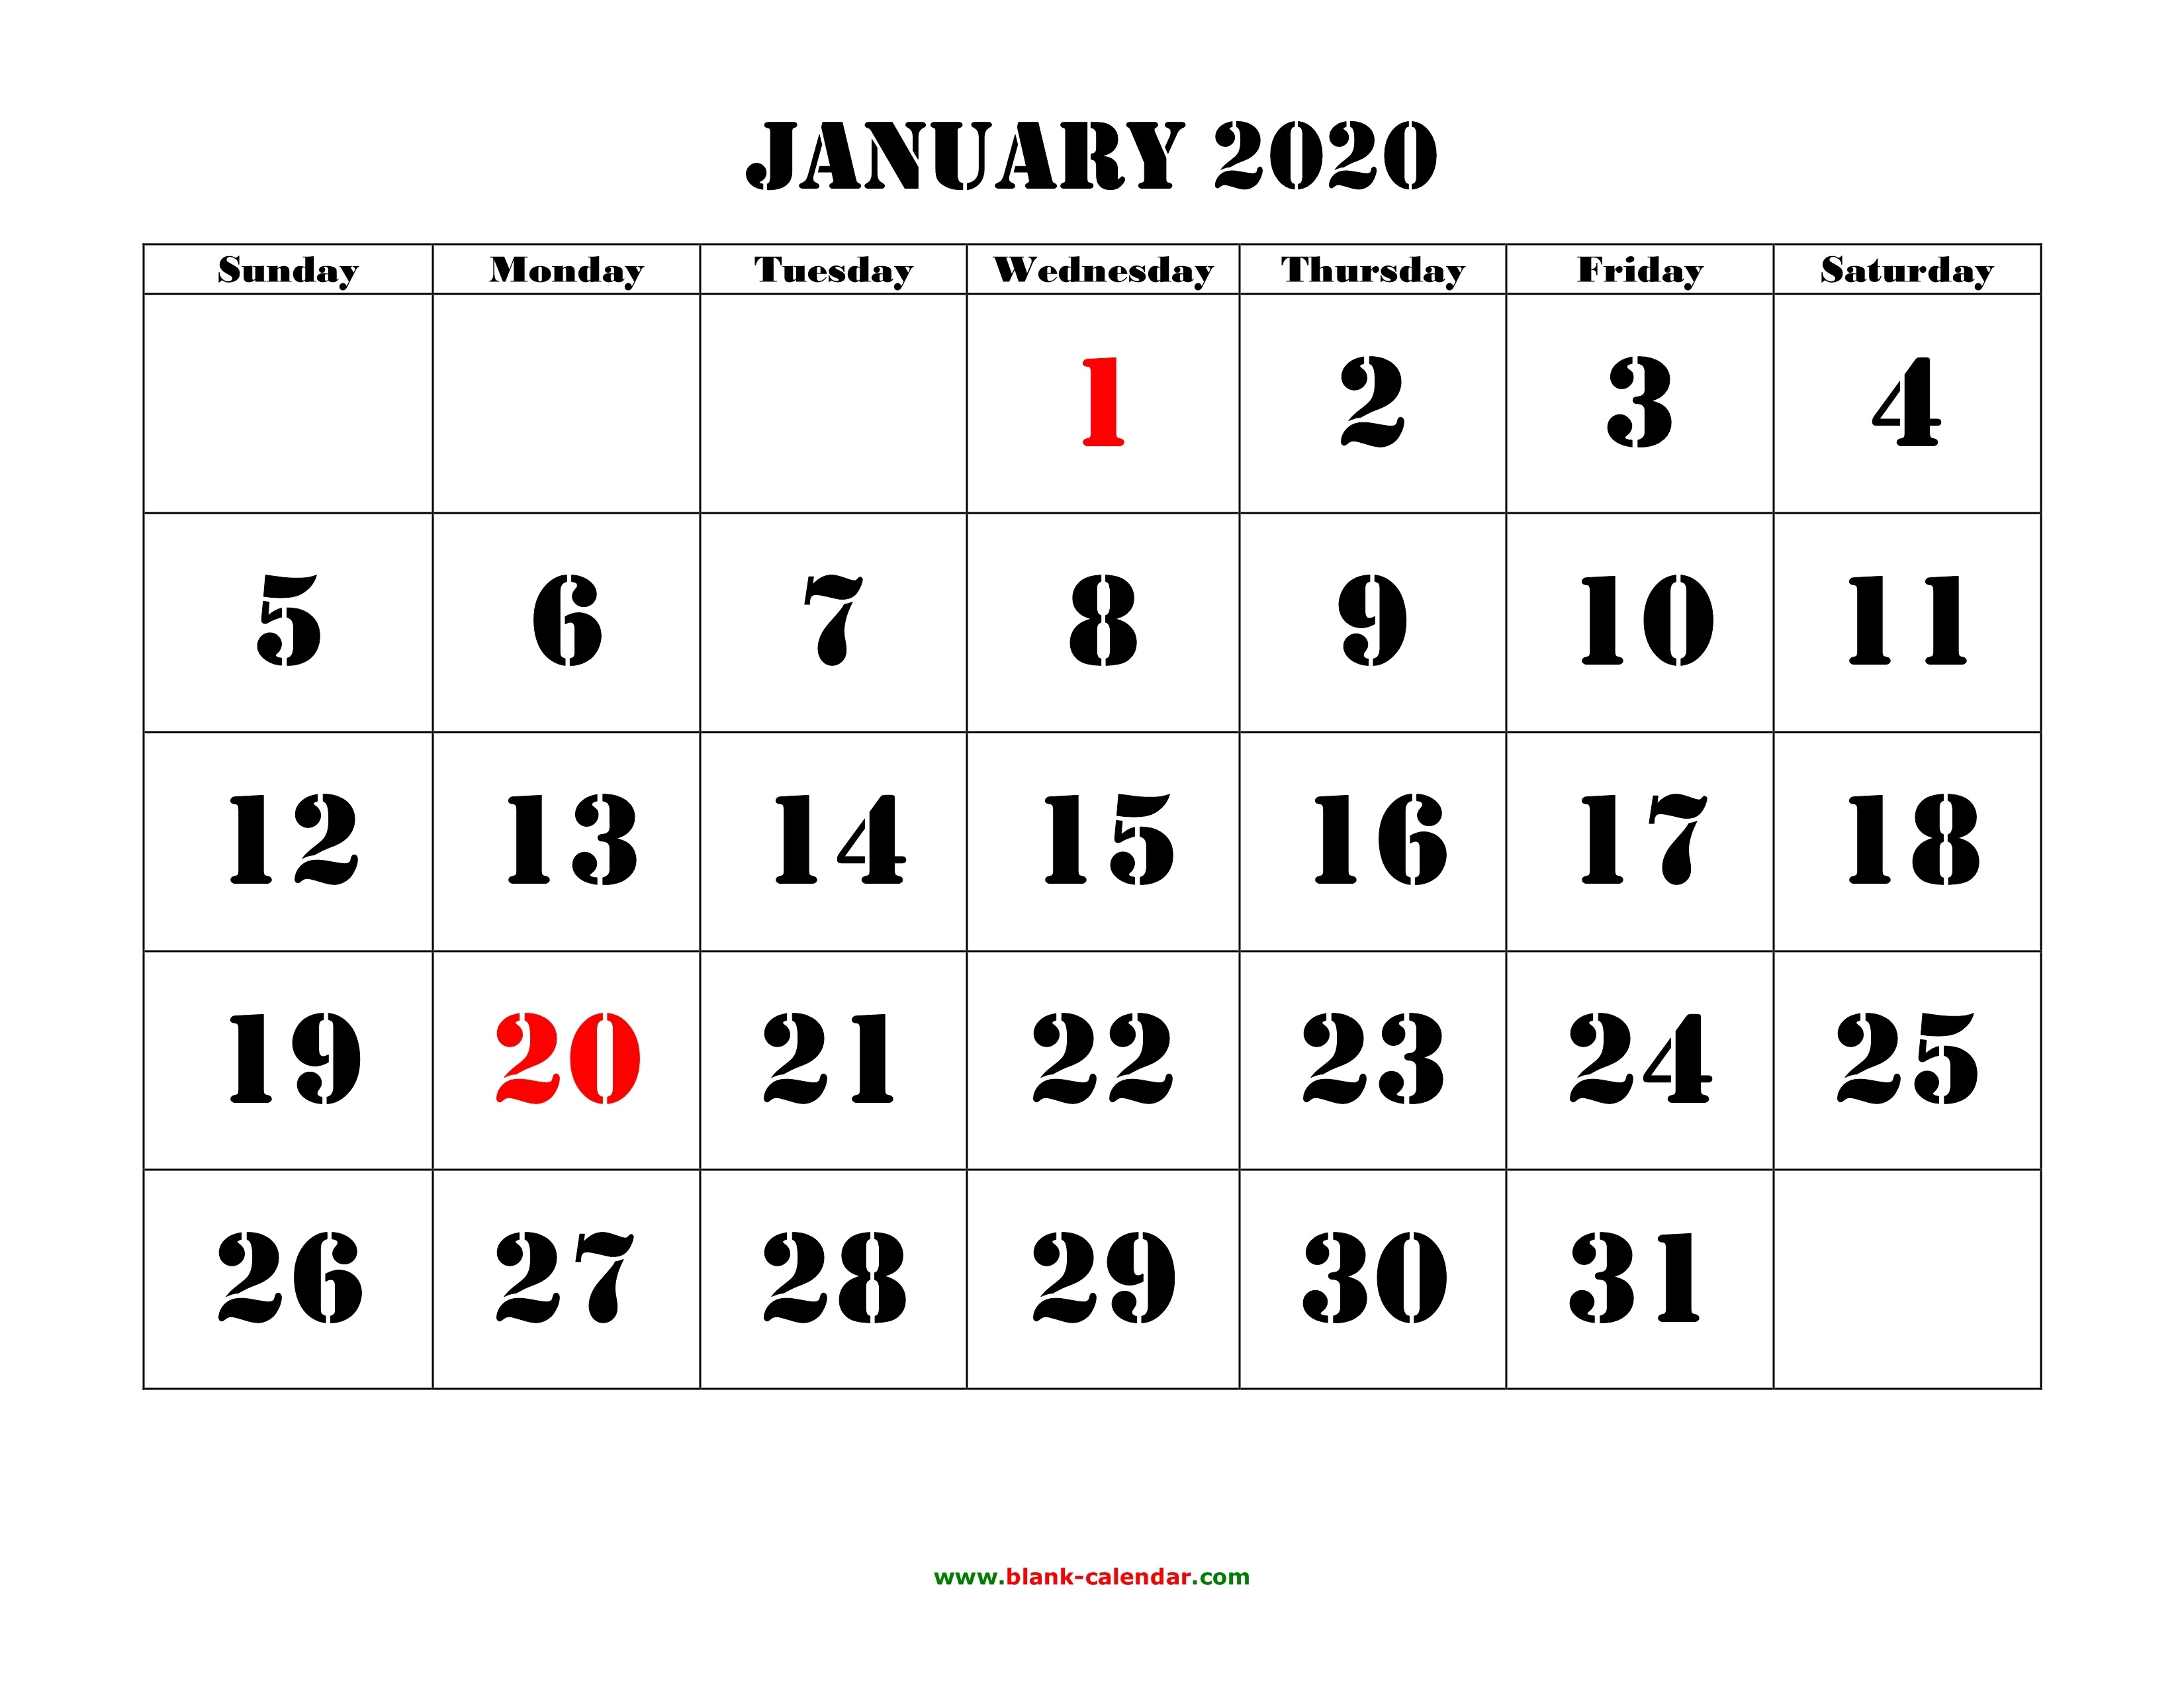 Printable Calendar 2020 | Free Download Yearly Calendar Templates_Blank Calendar 2020 3 Month